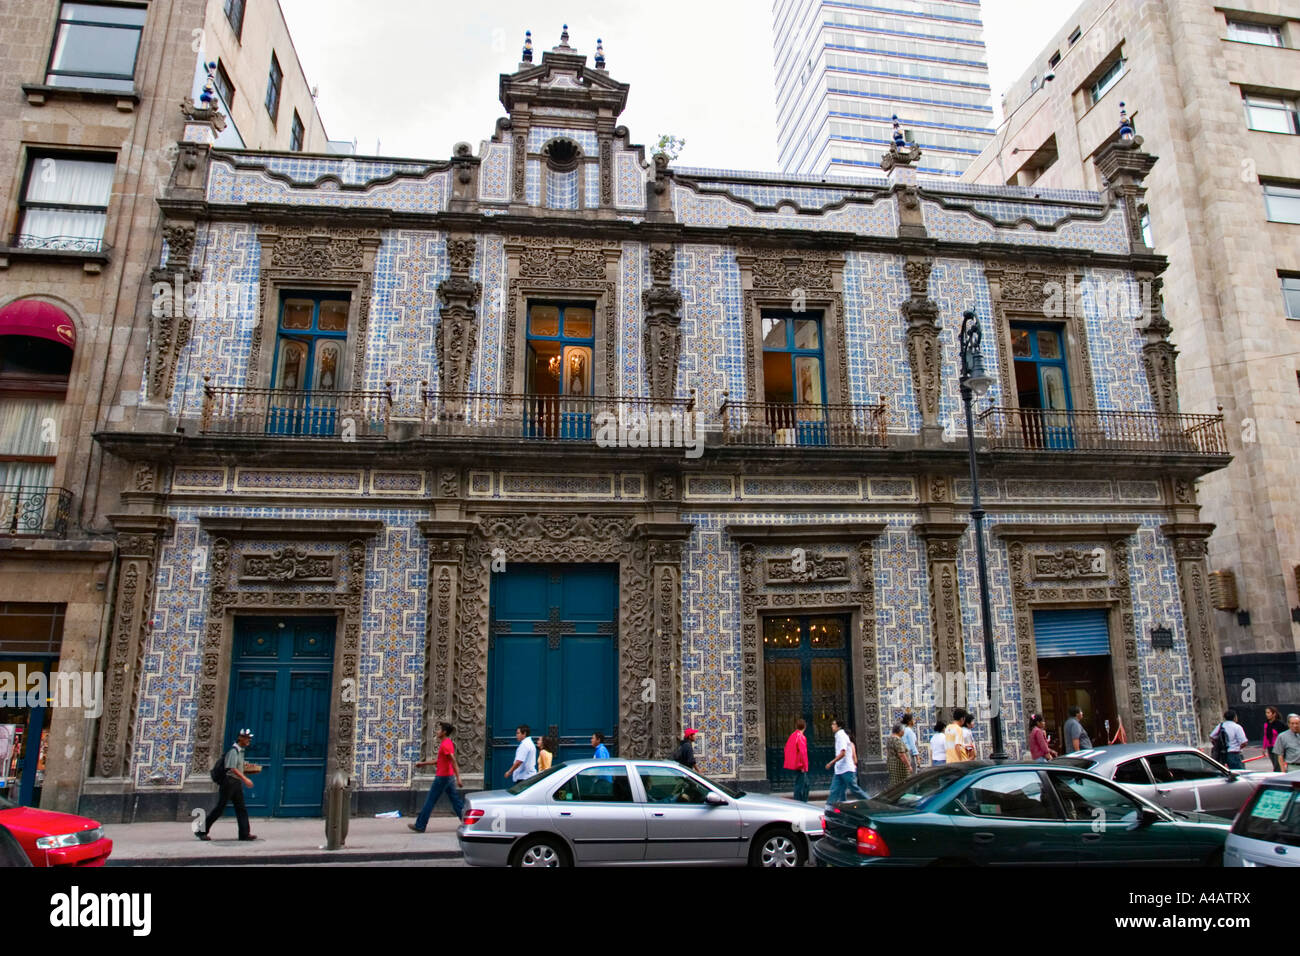 Casa de los azulejos mexico city mexico stock photo for Los azulejos